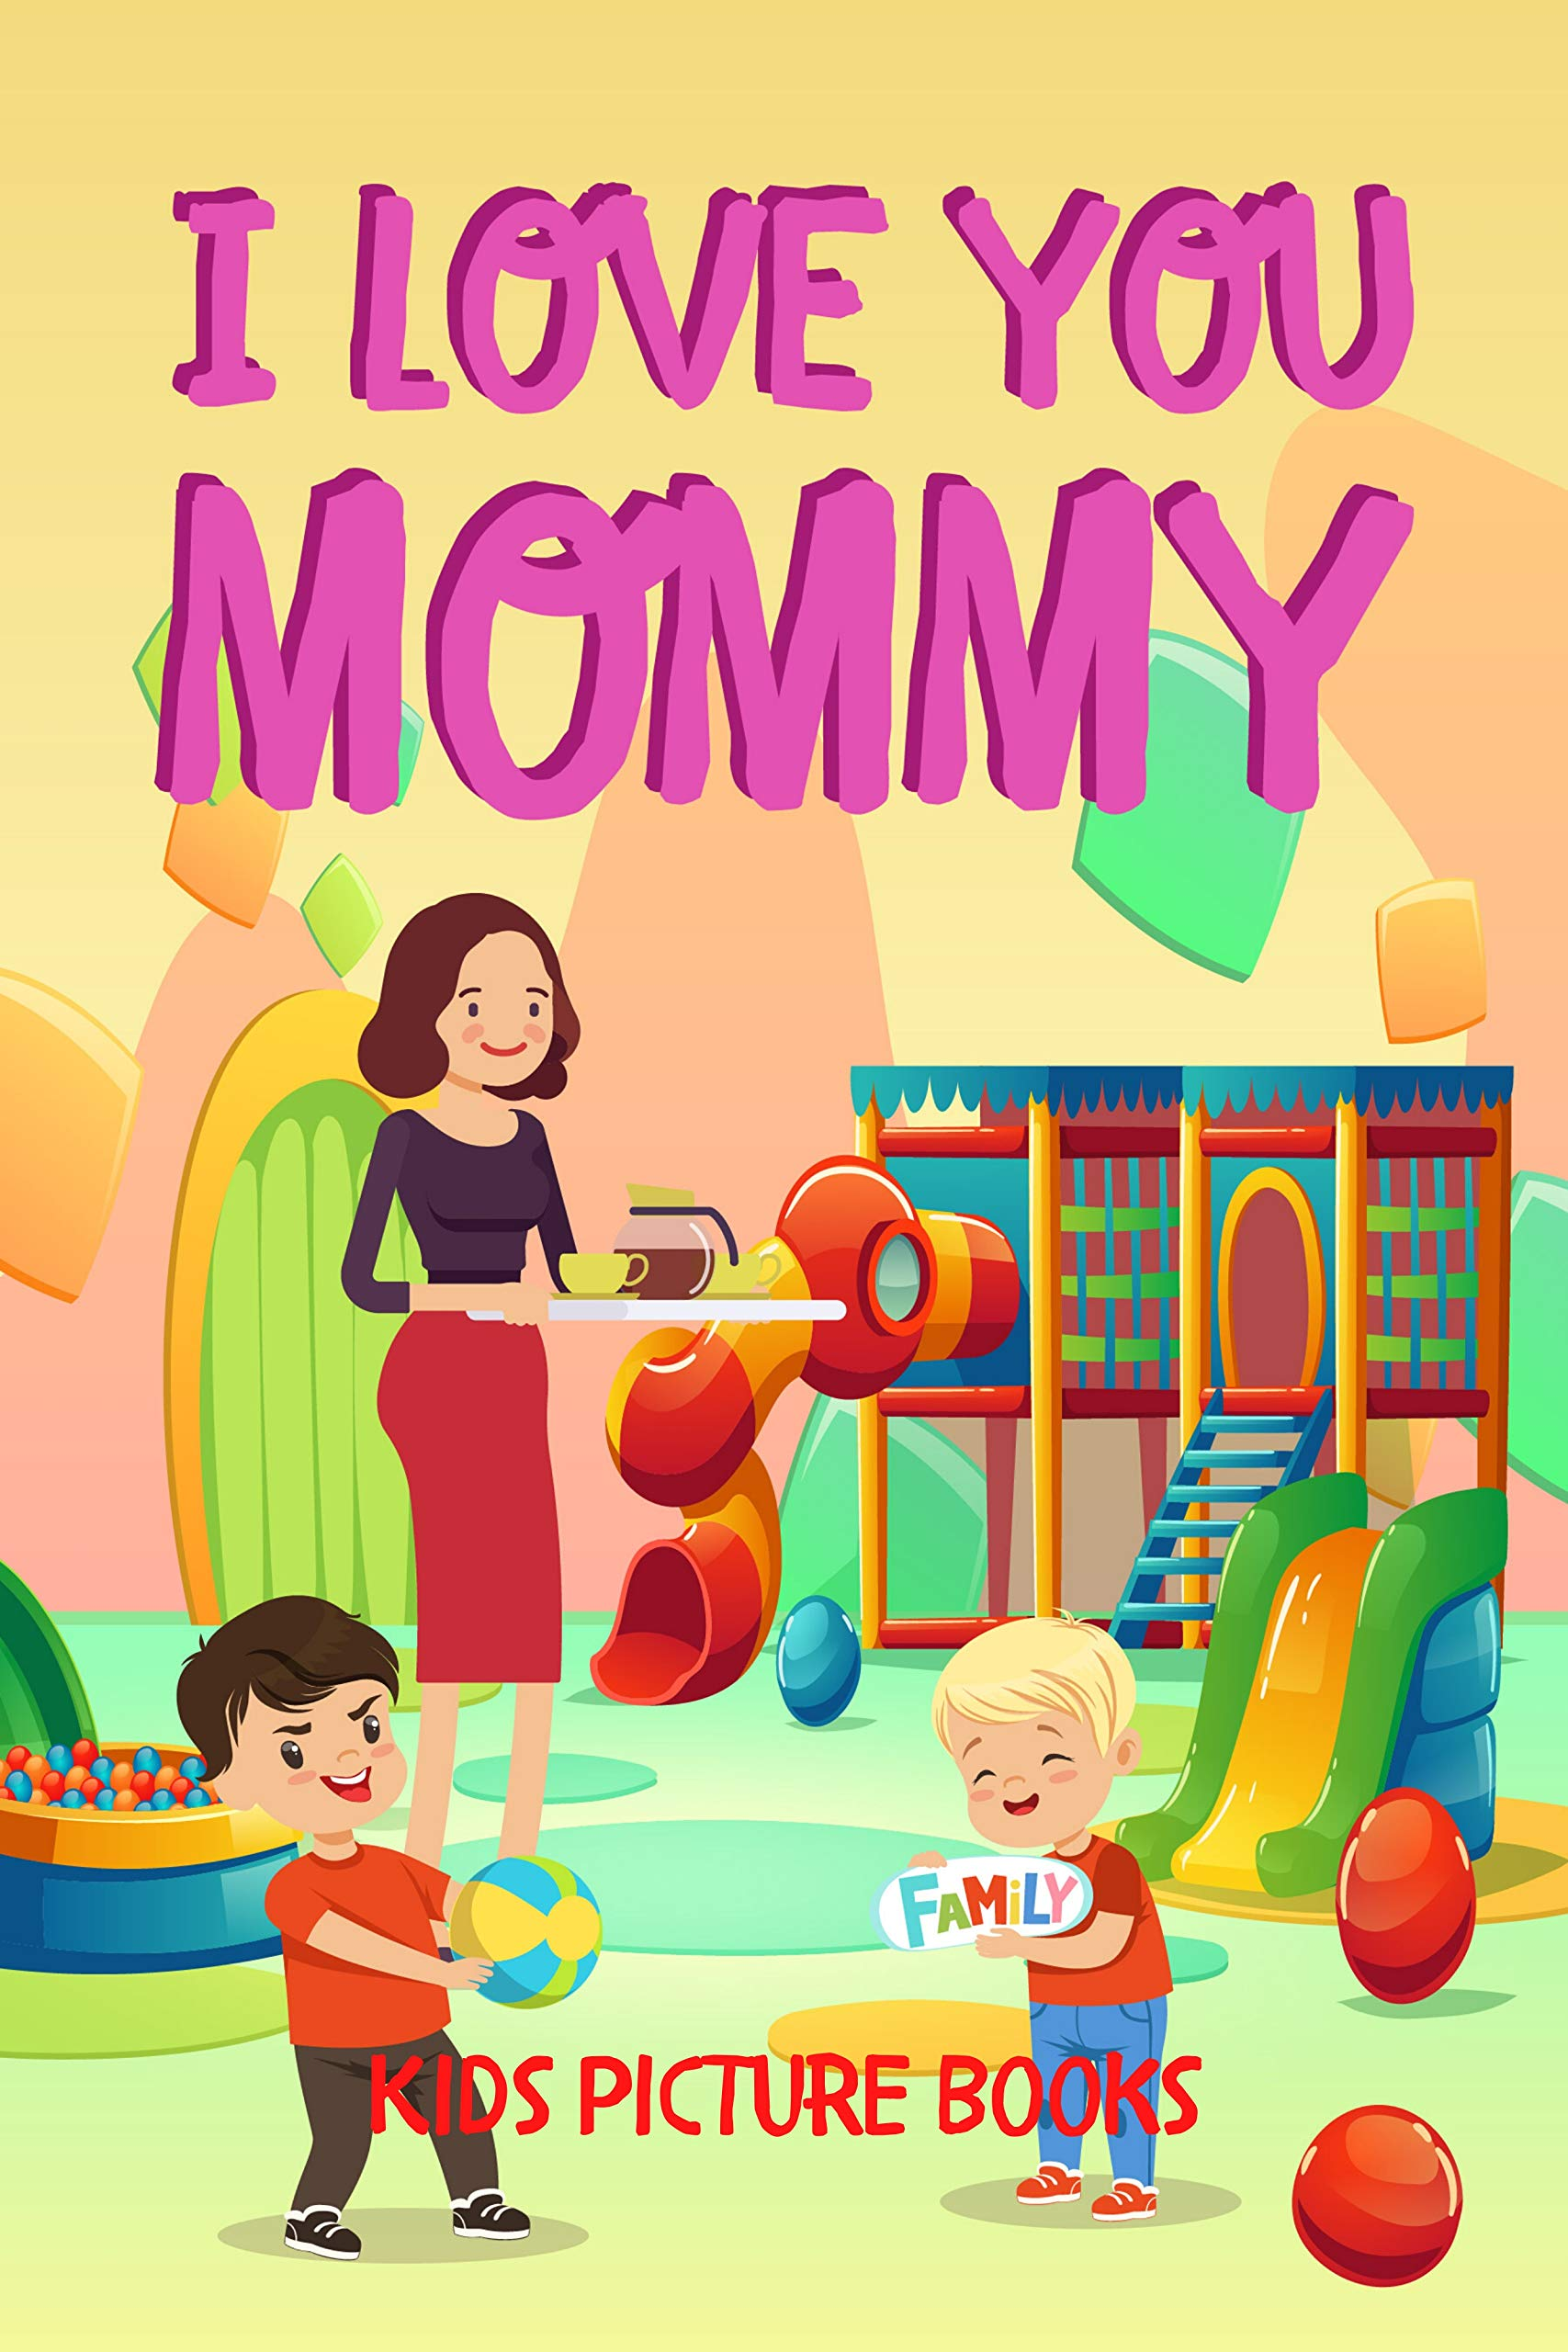 I Love You Mommy - Kids Picture Books: Love You Forever